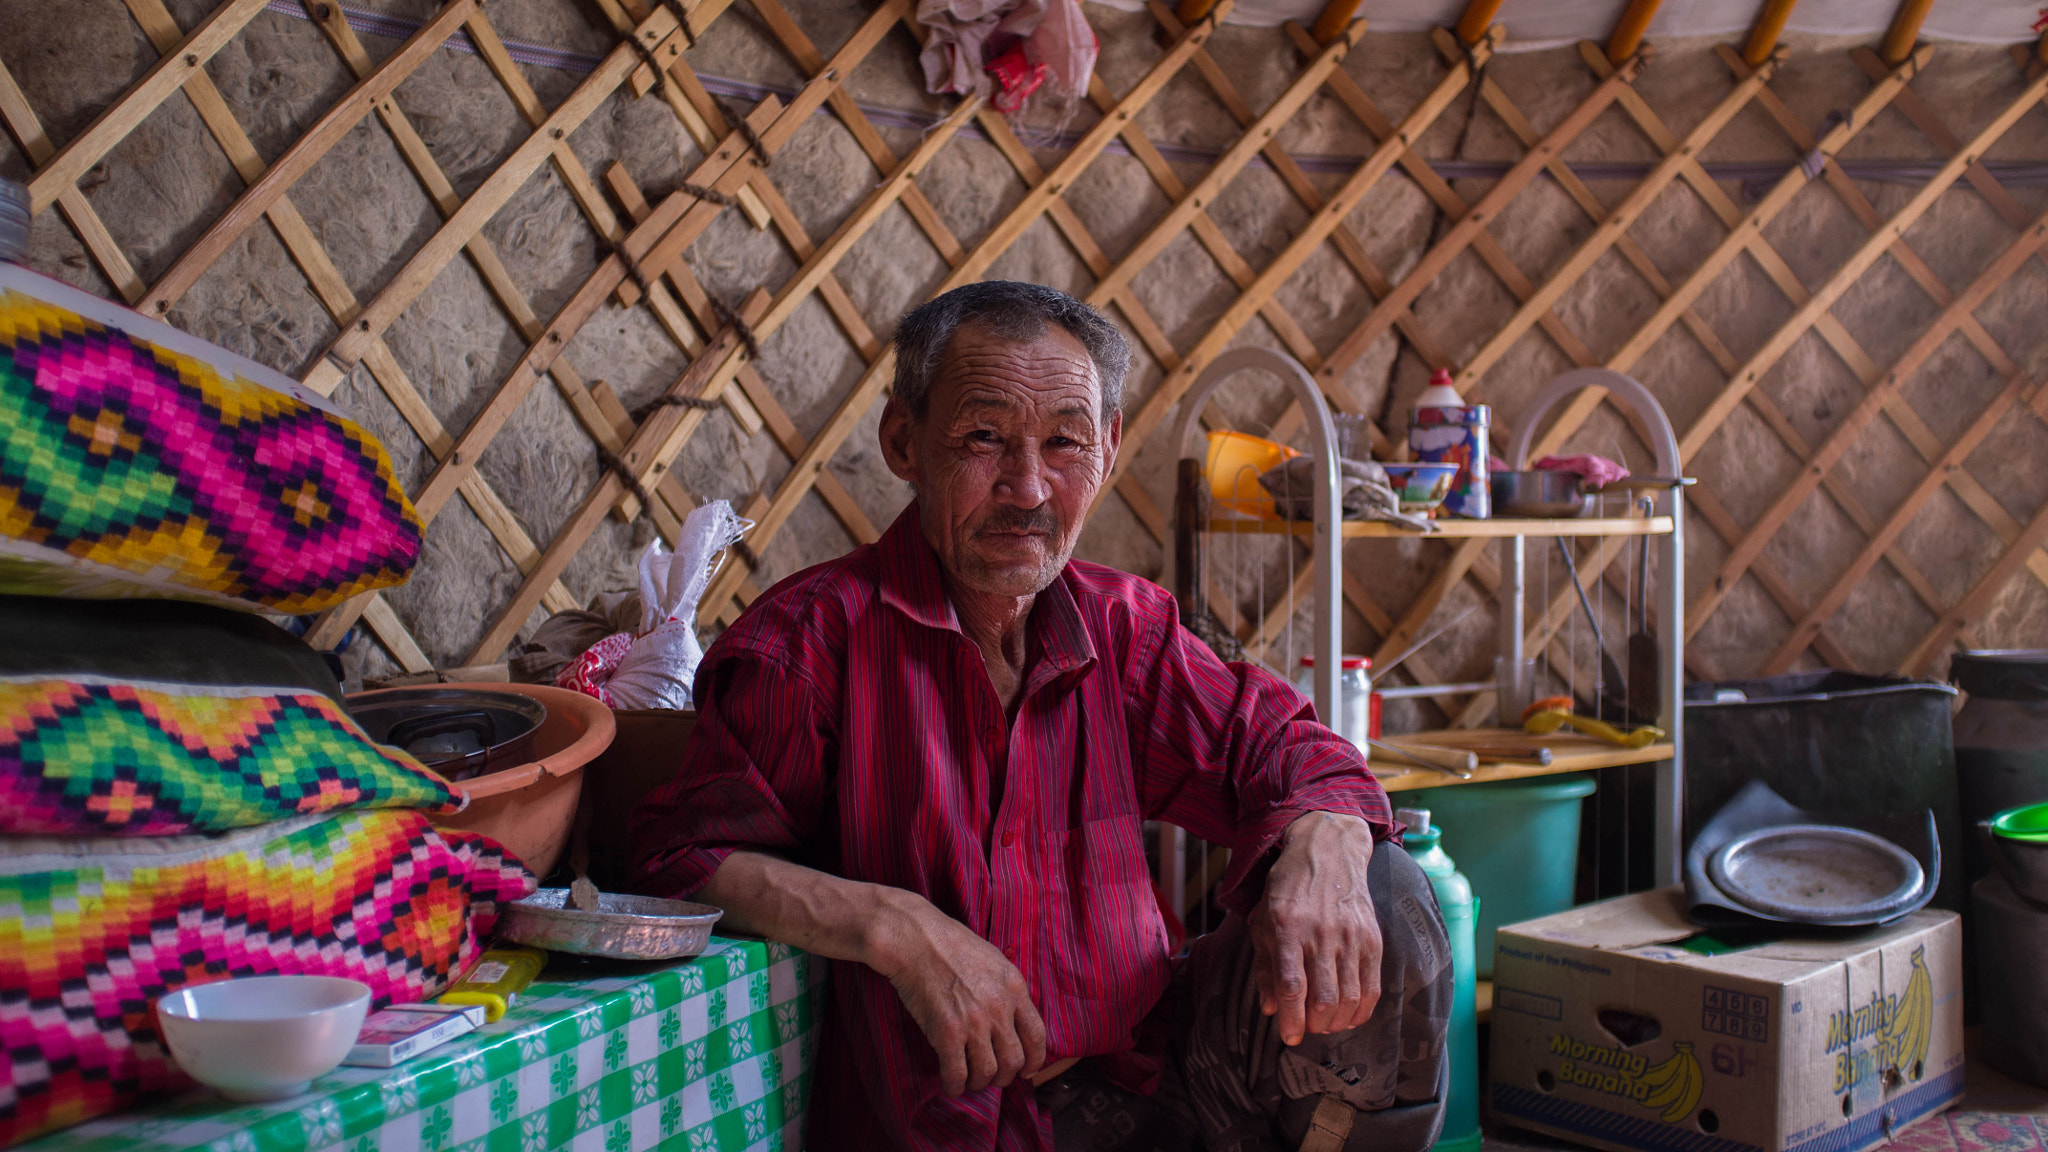 Photograph in a mongolian yurt by Severin Stalder on 500px